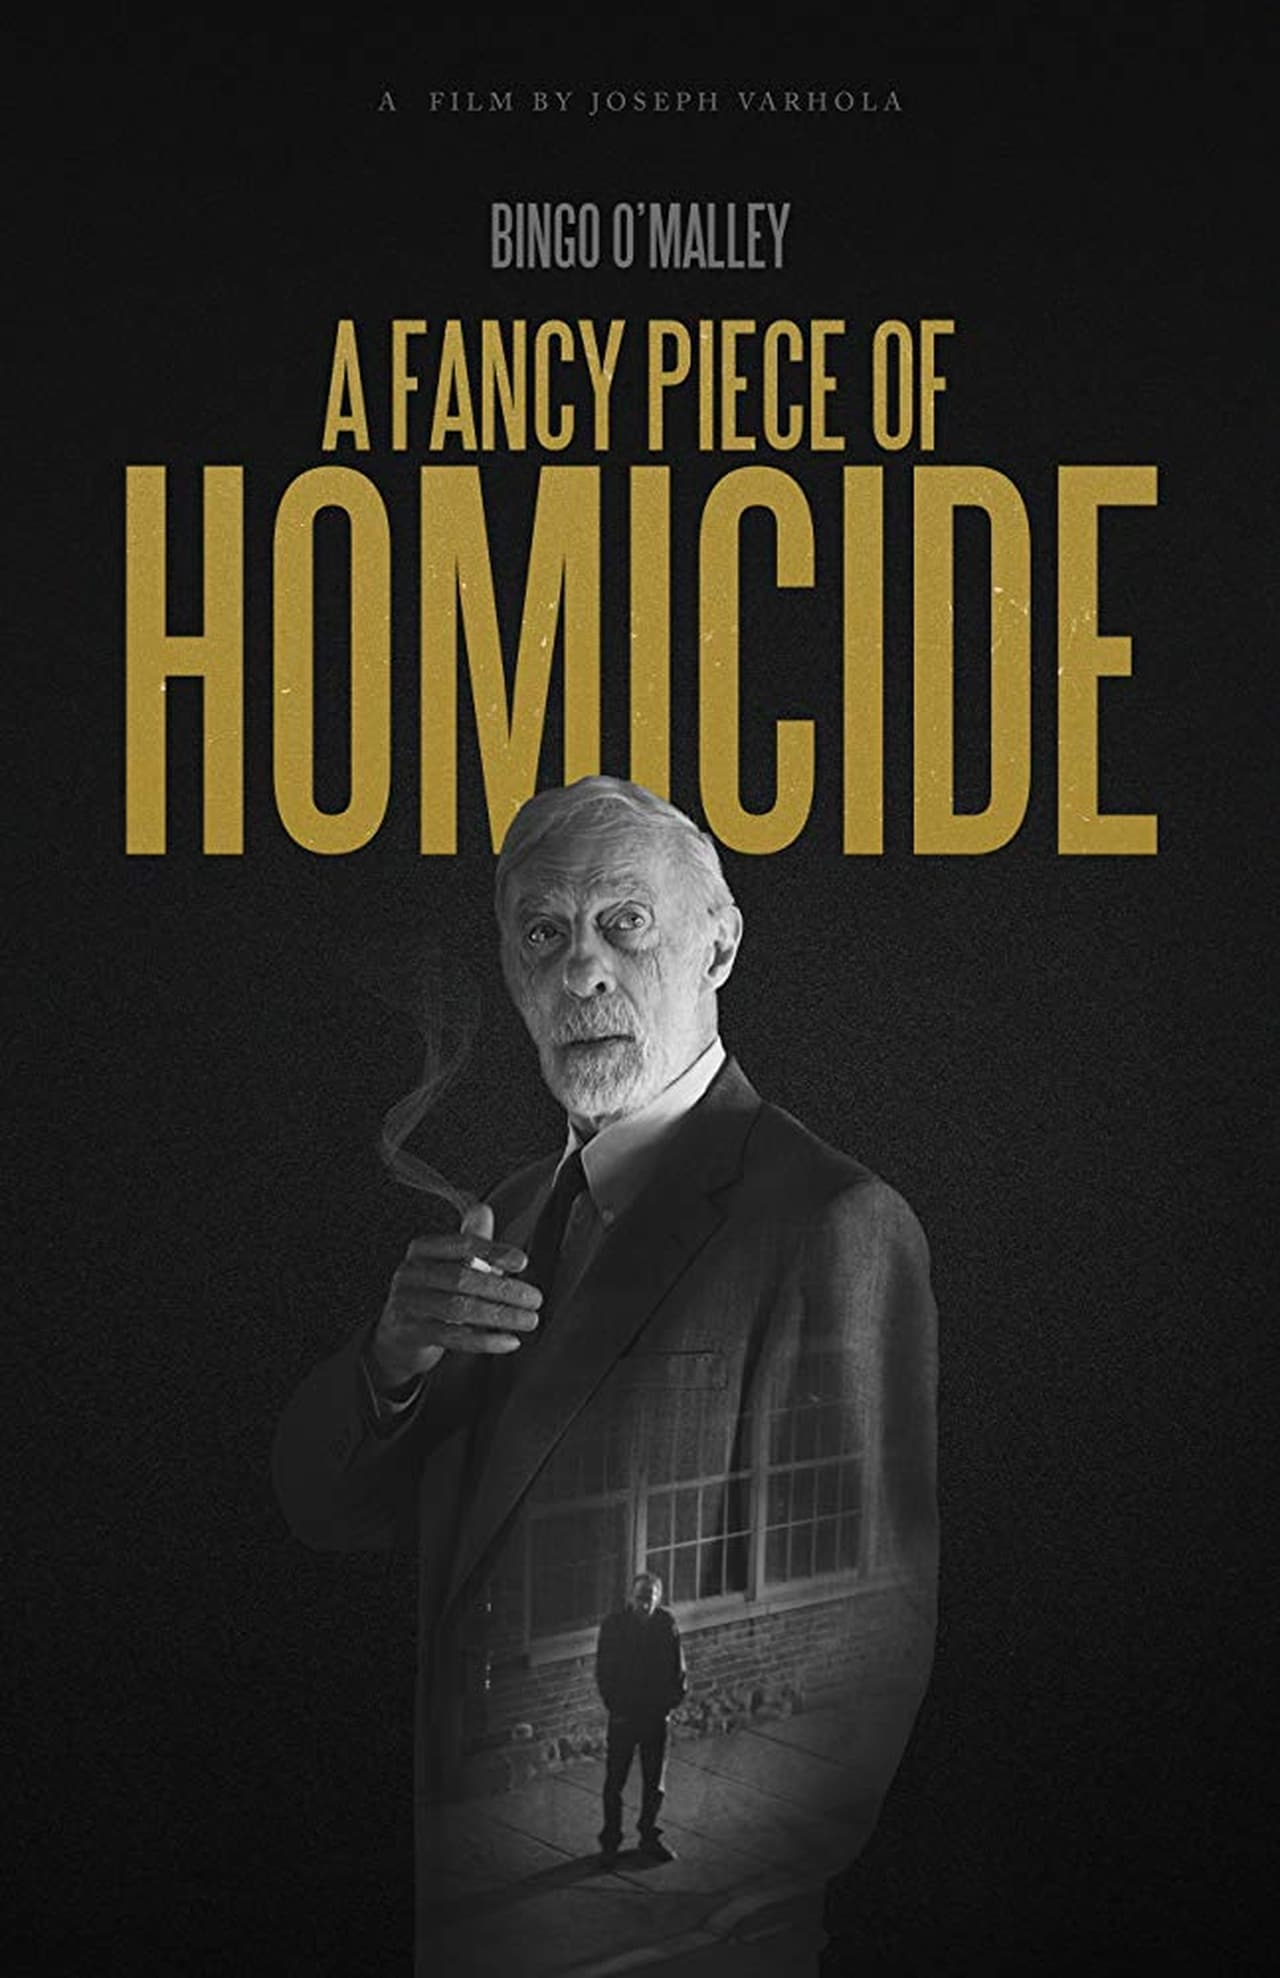 A Fancy Piece of Homicide